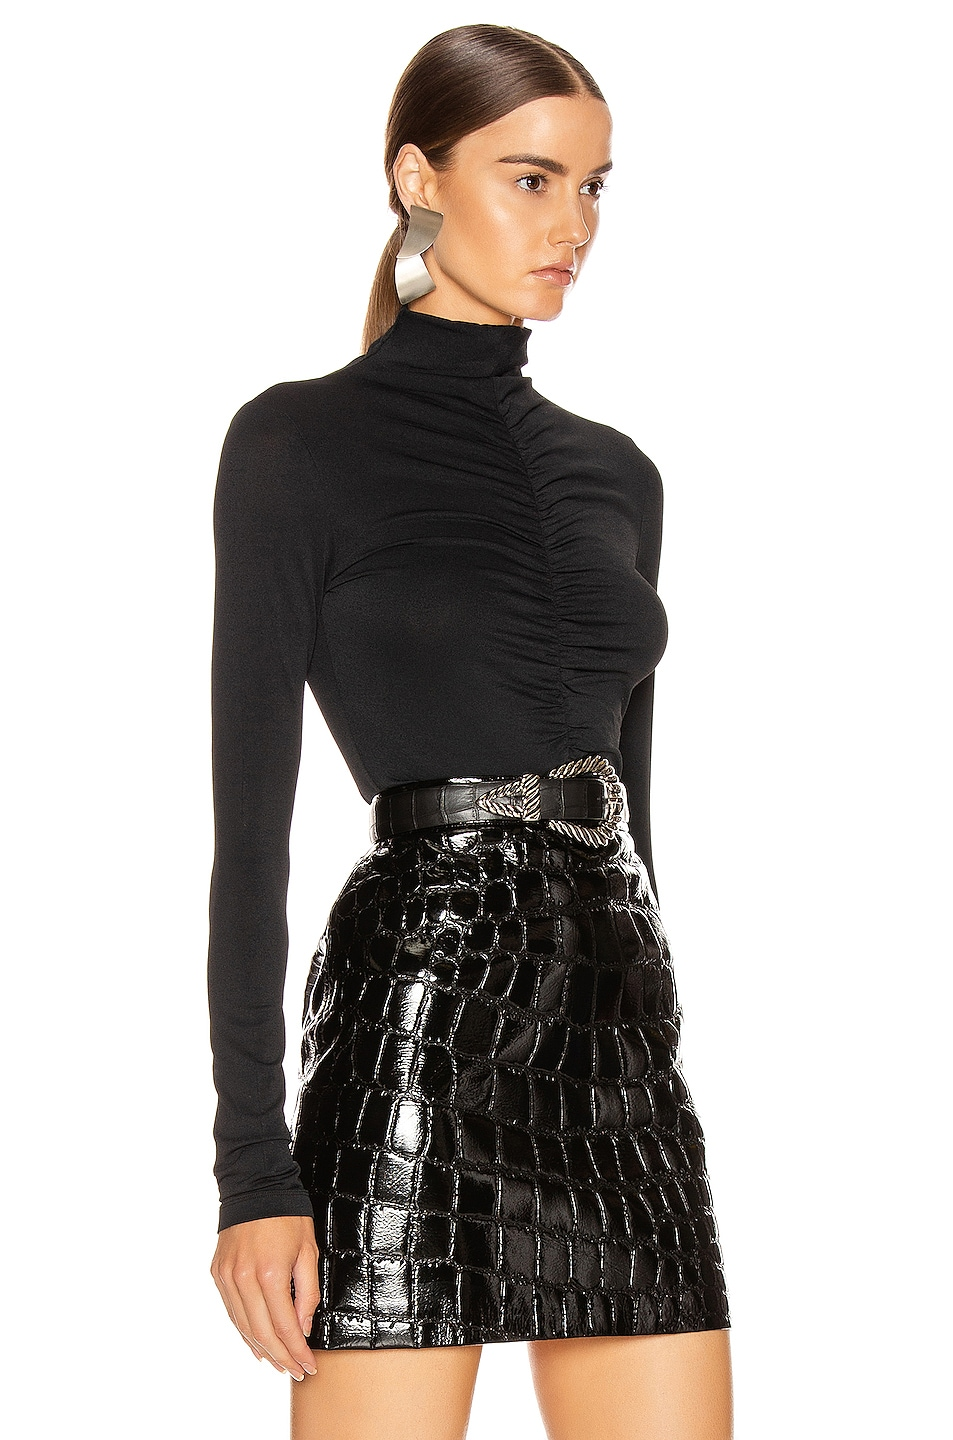 Image 3 of Proenza Schouler PSWL Long Sleeve Fitted Turtleneck Top in Black